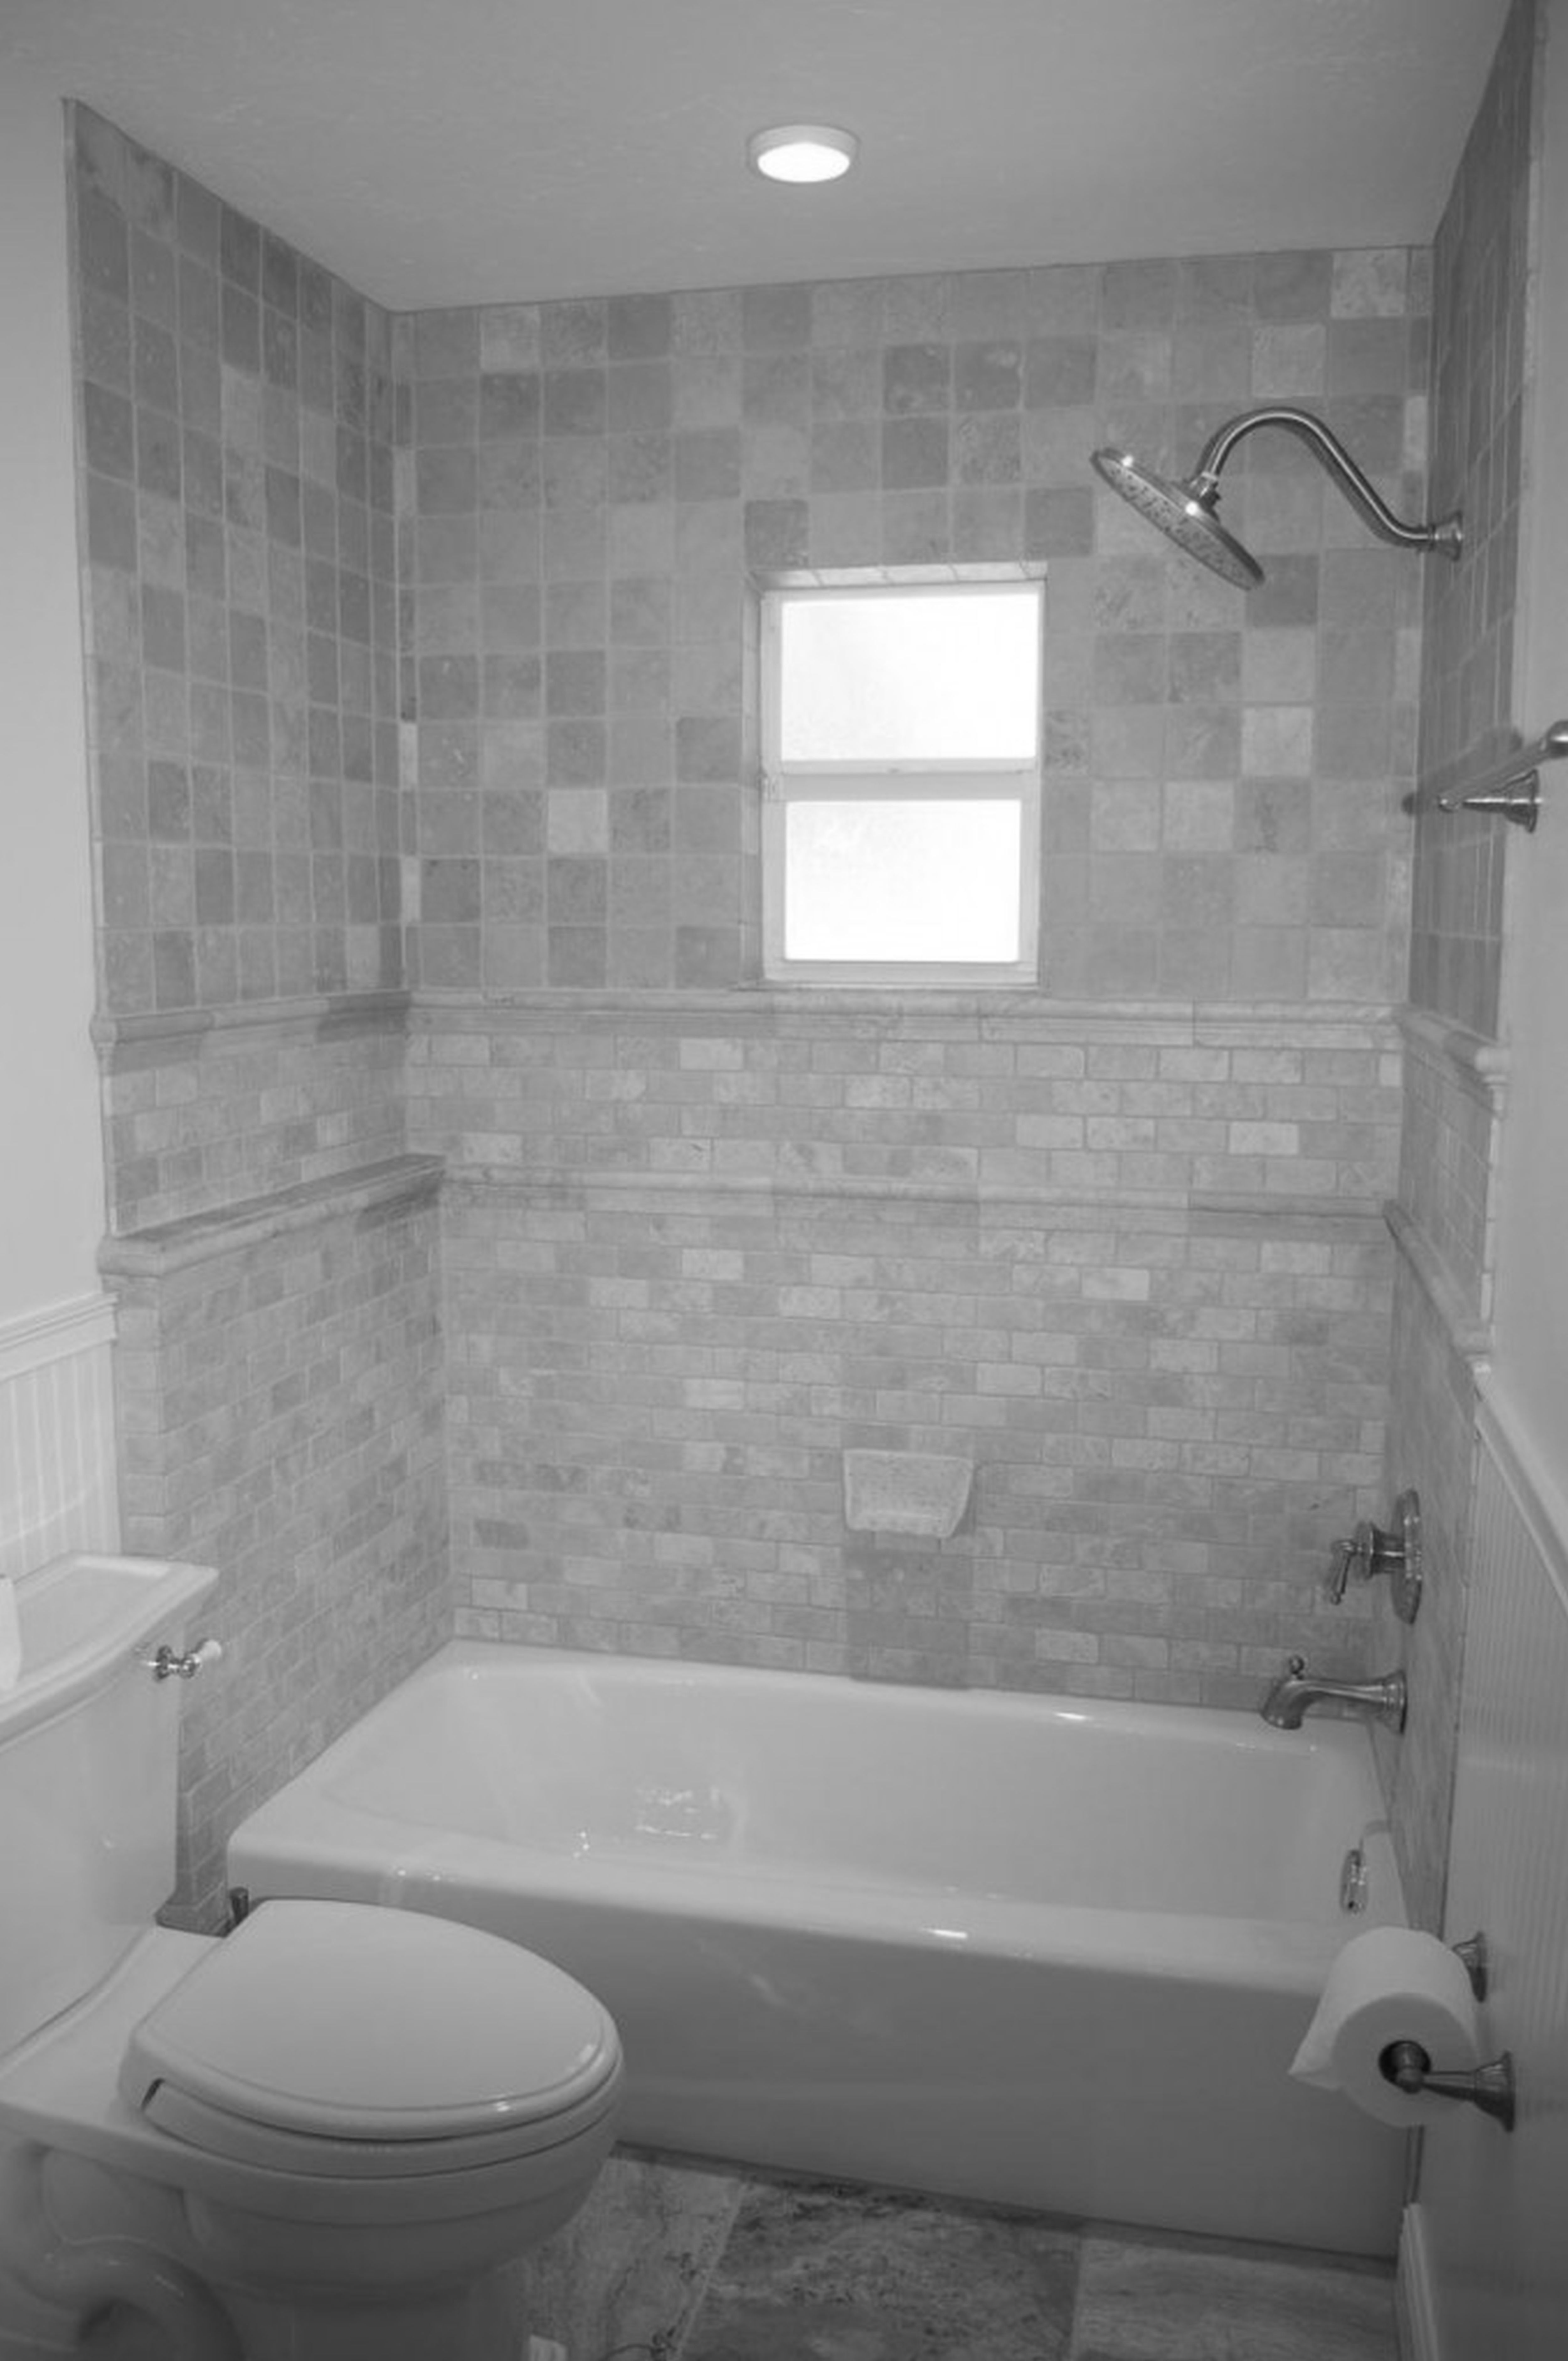 bathtub and latrine connected by stainless steel shower on